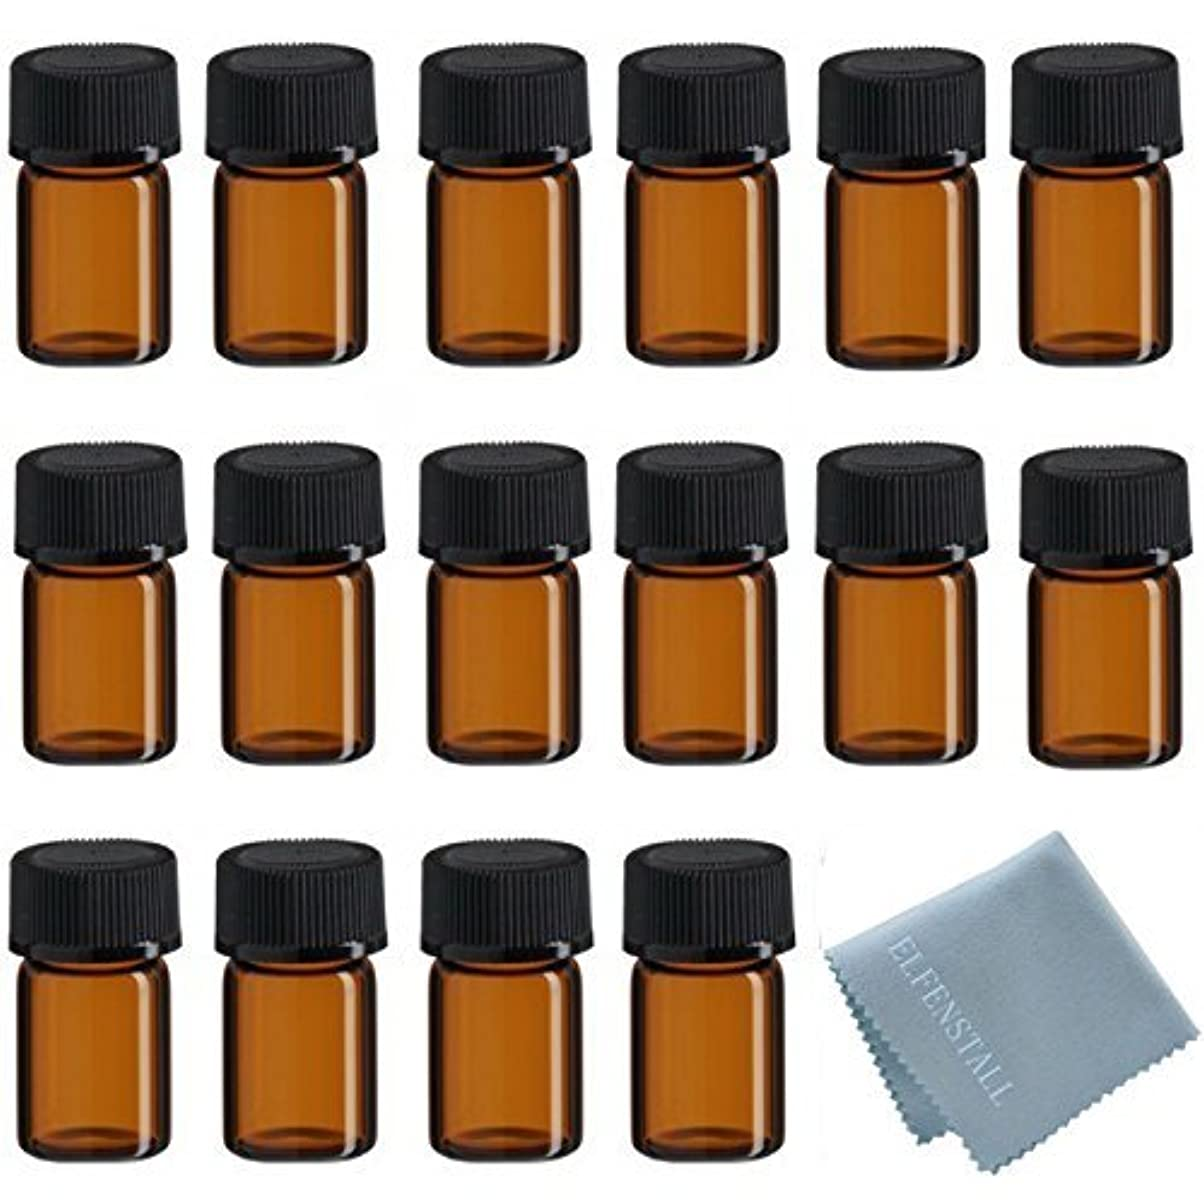 禁輸高さカンガルーELFENSTALL 50Pcs 2ml Oil Bottles for Essential Oils (5/8 Dram) Amber Glass Vials Bottles, with Orifice Reducers...